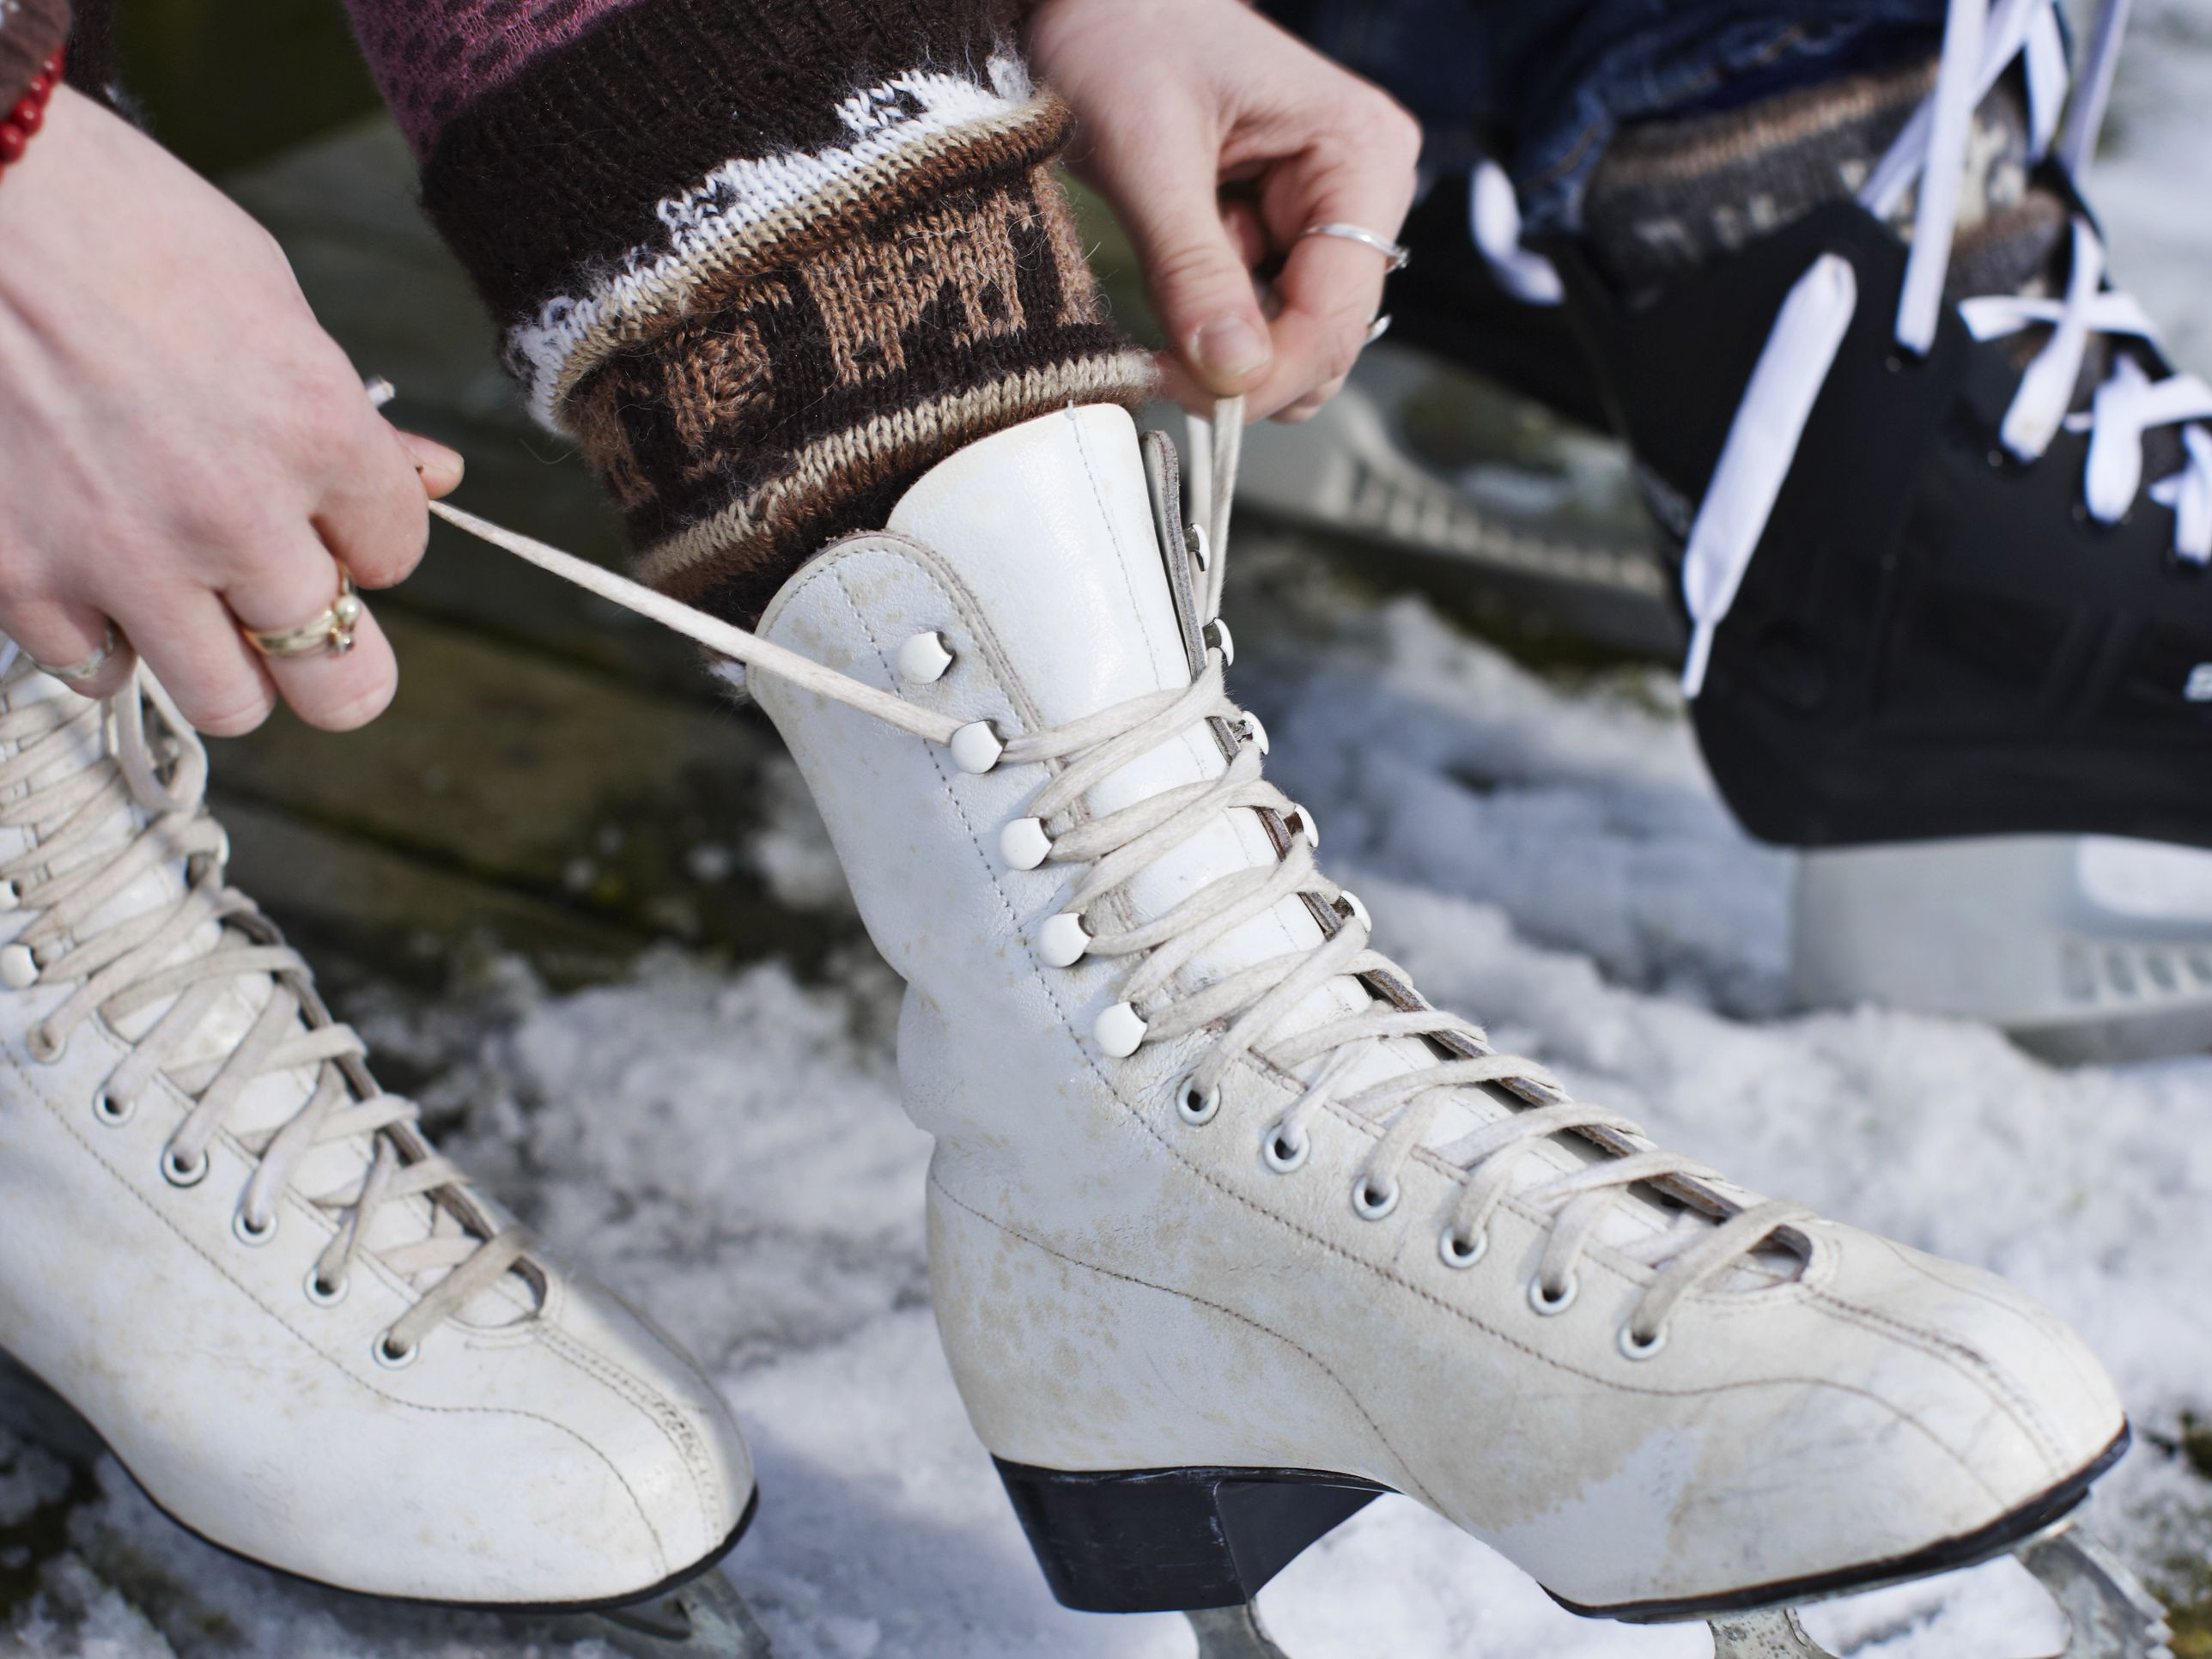 What Is the Difference Between a Hockey and Figure Skates?